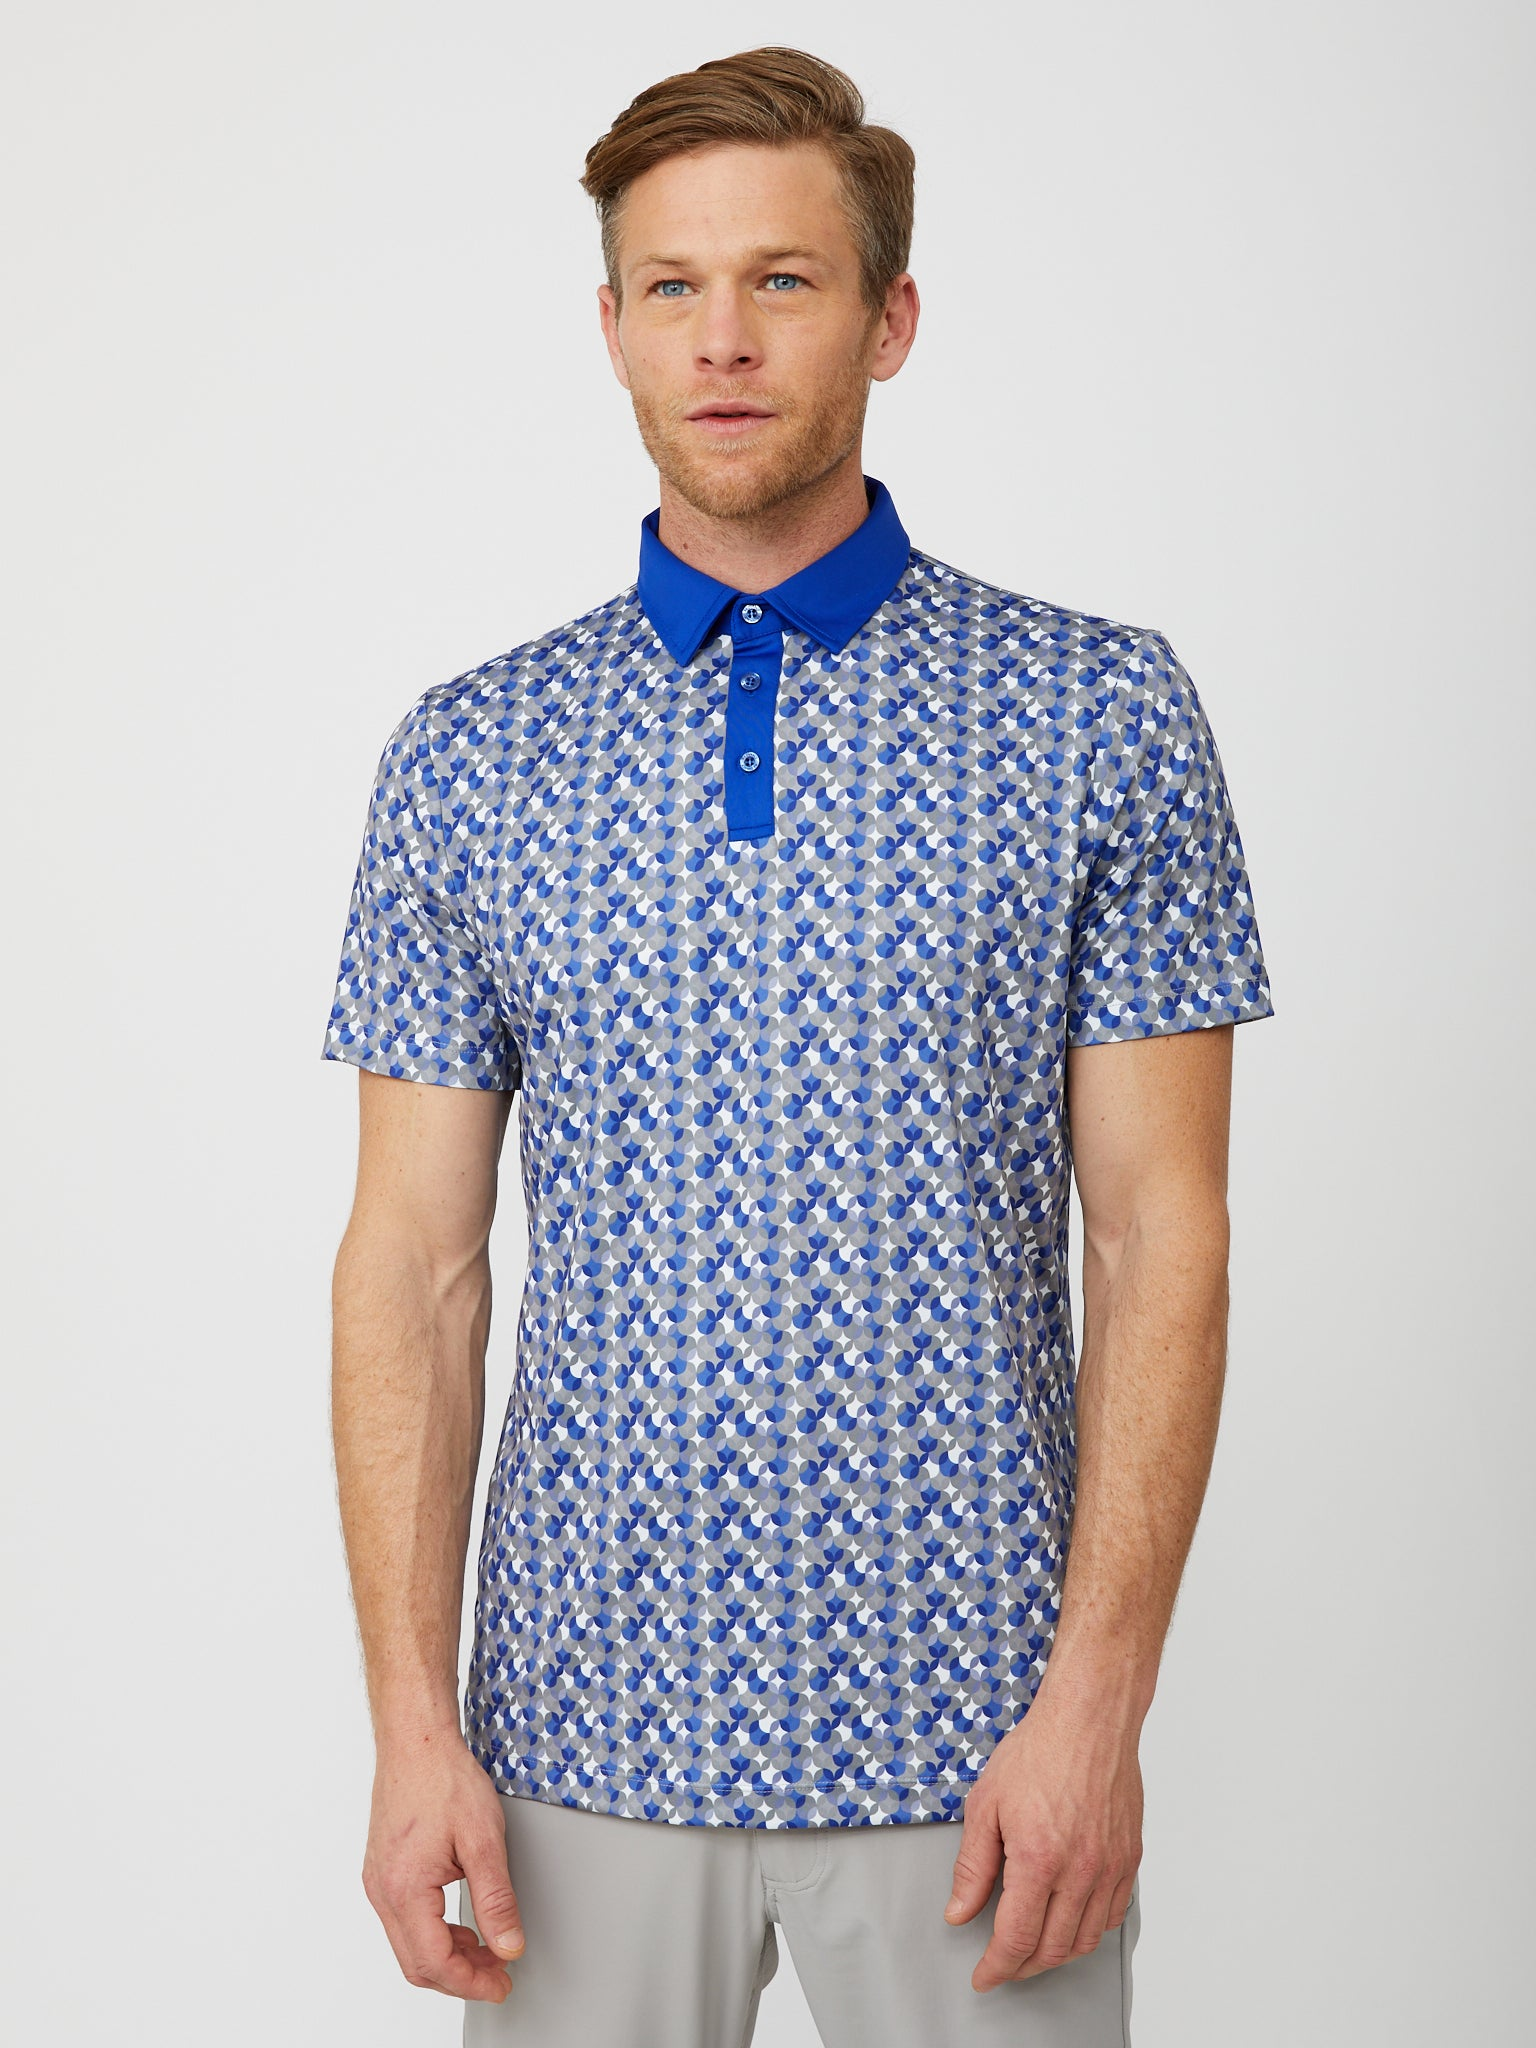 Exeter Polo in Reflex Blue/Multi